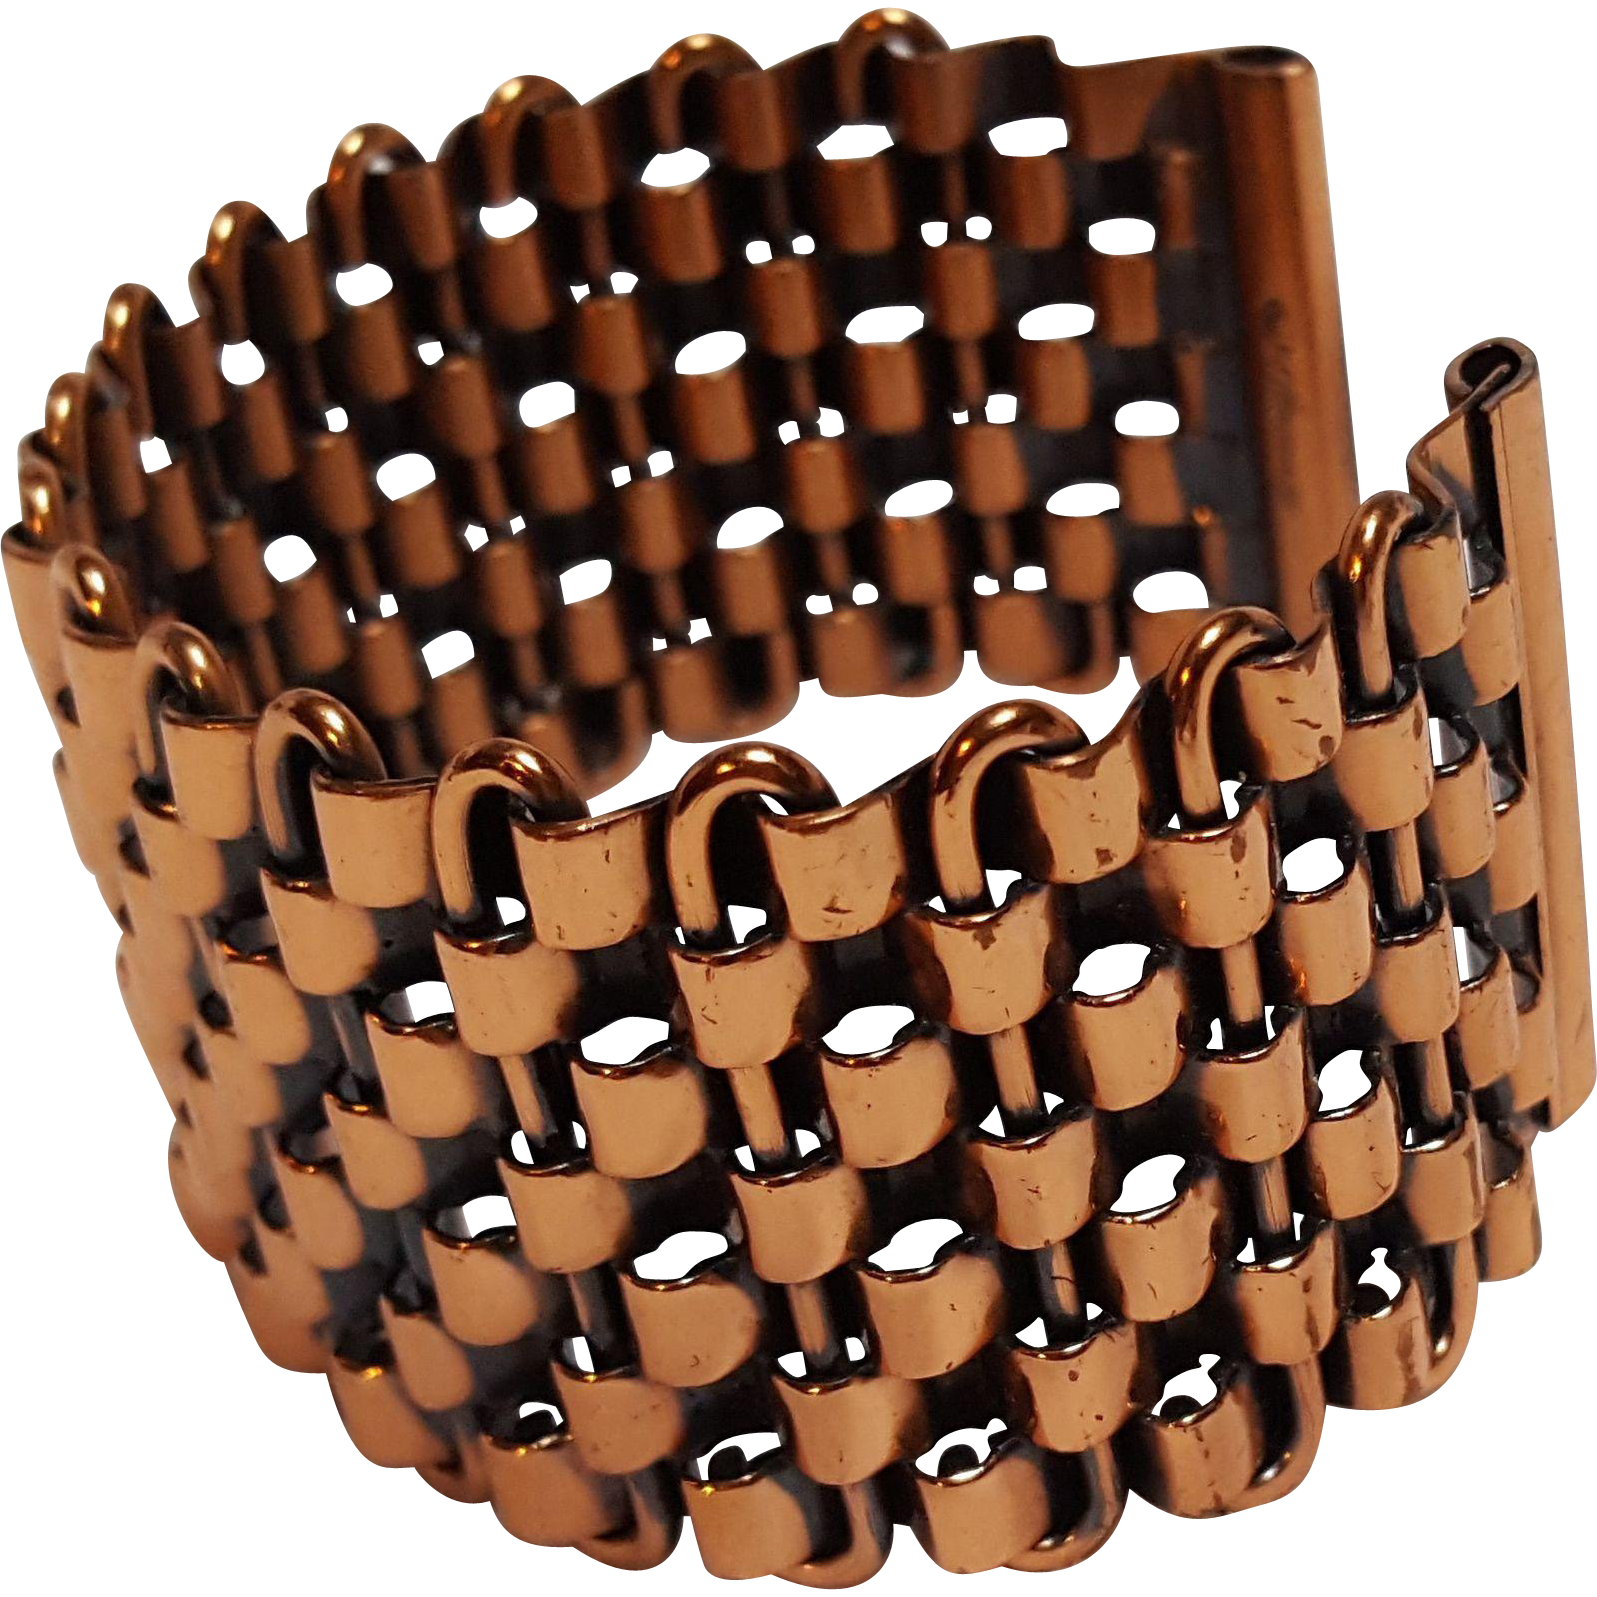 Renoir copper basketweave cuff bracelet